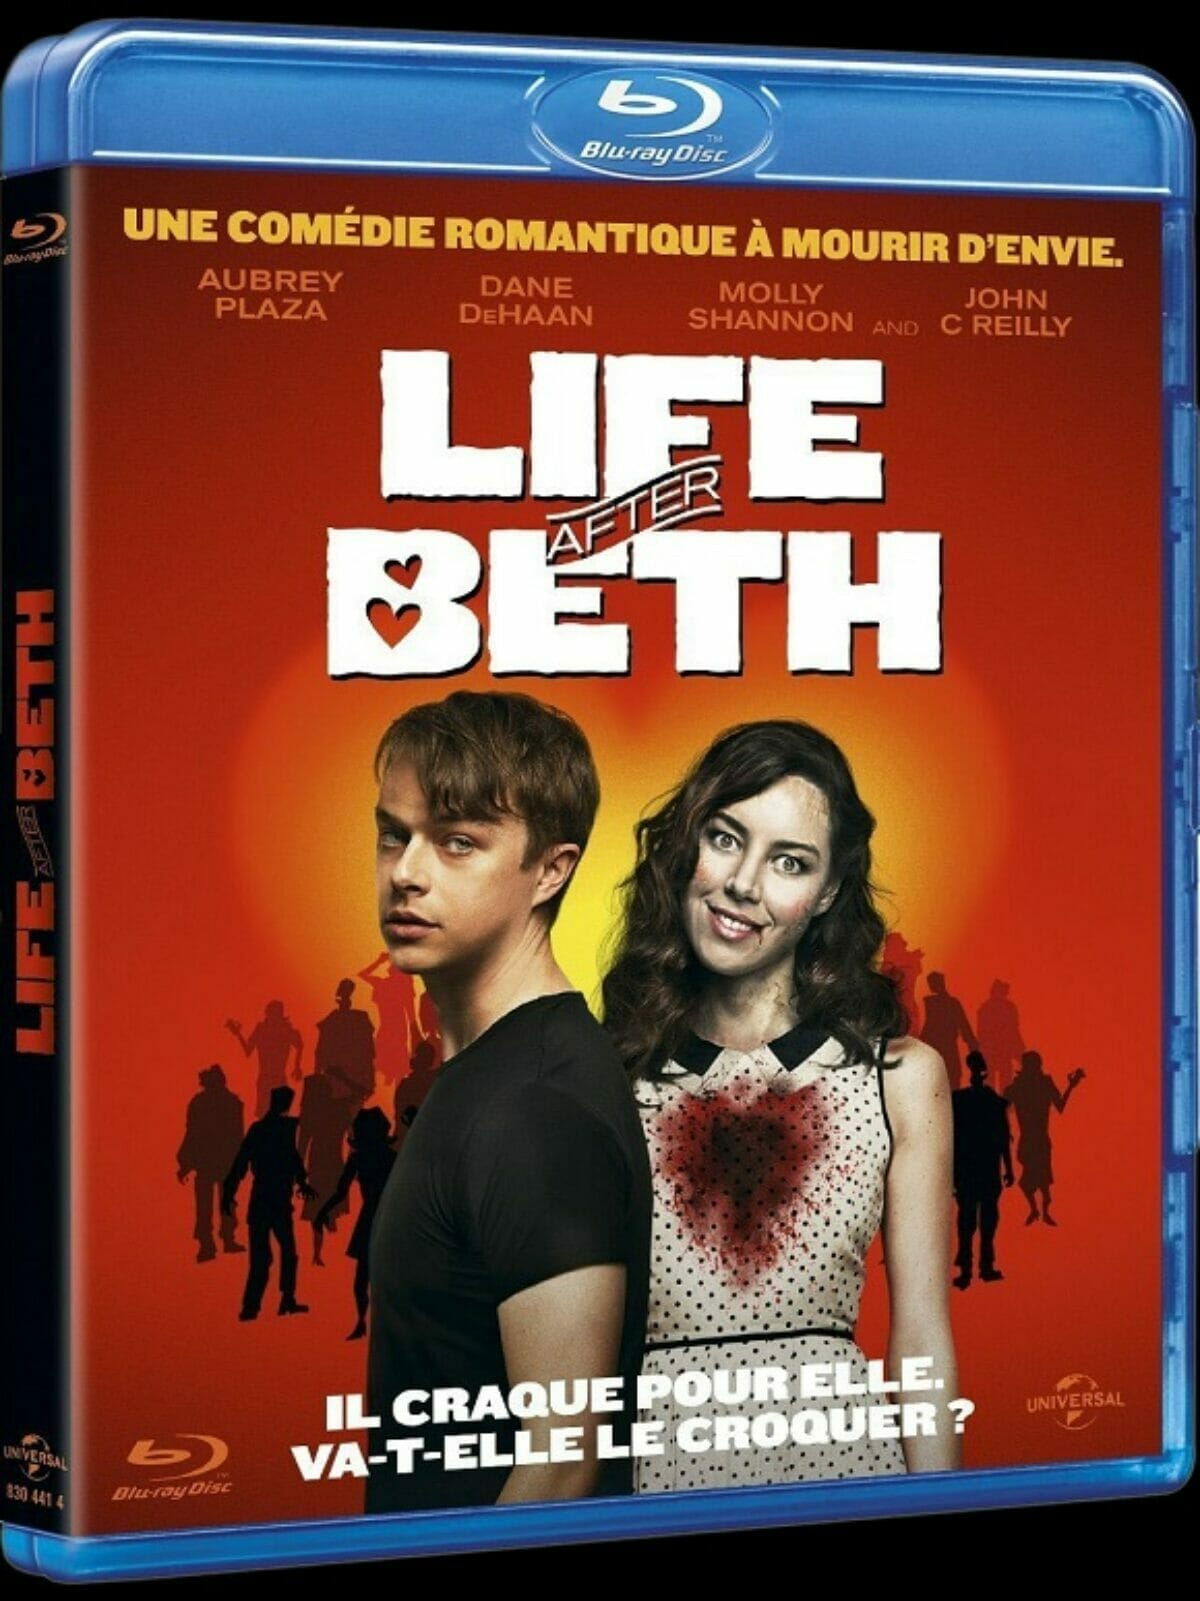 Life-After-Beth-poster